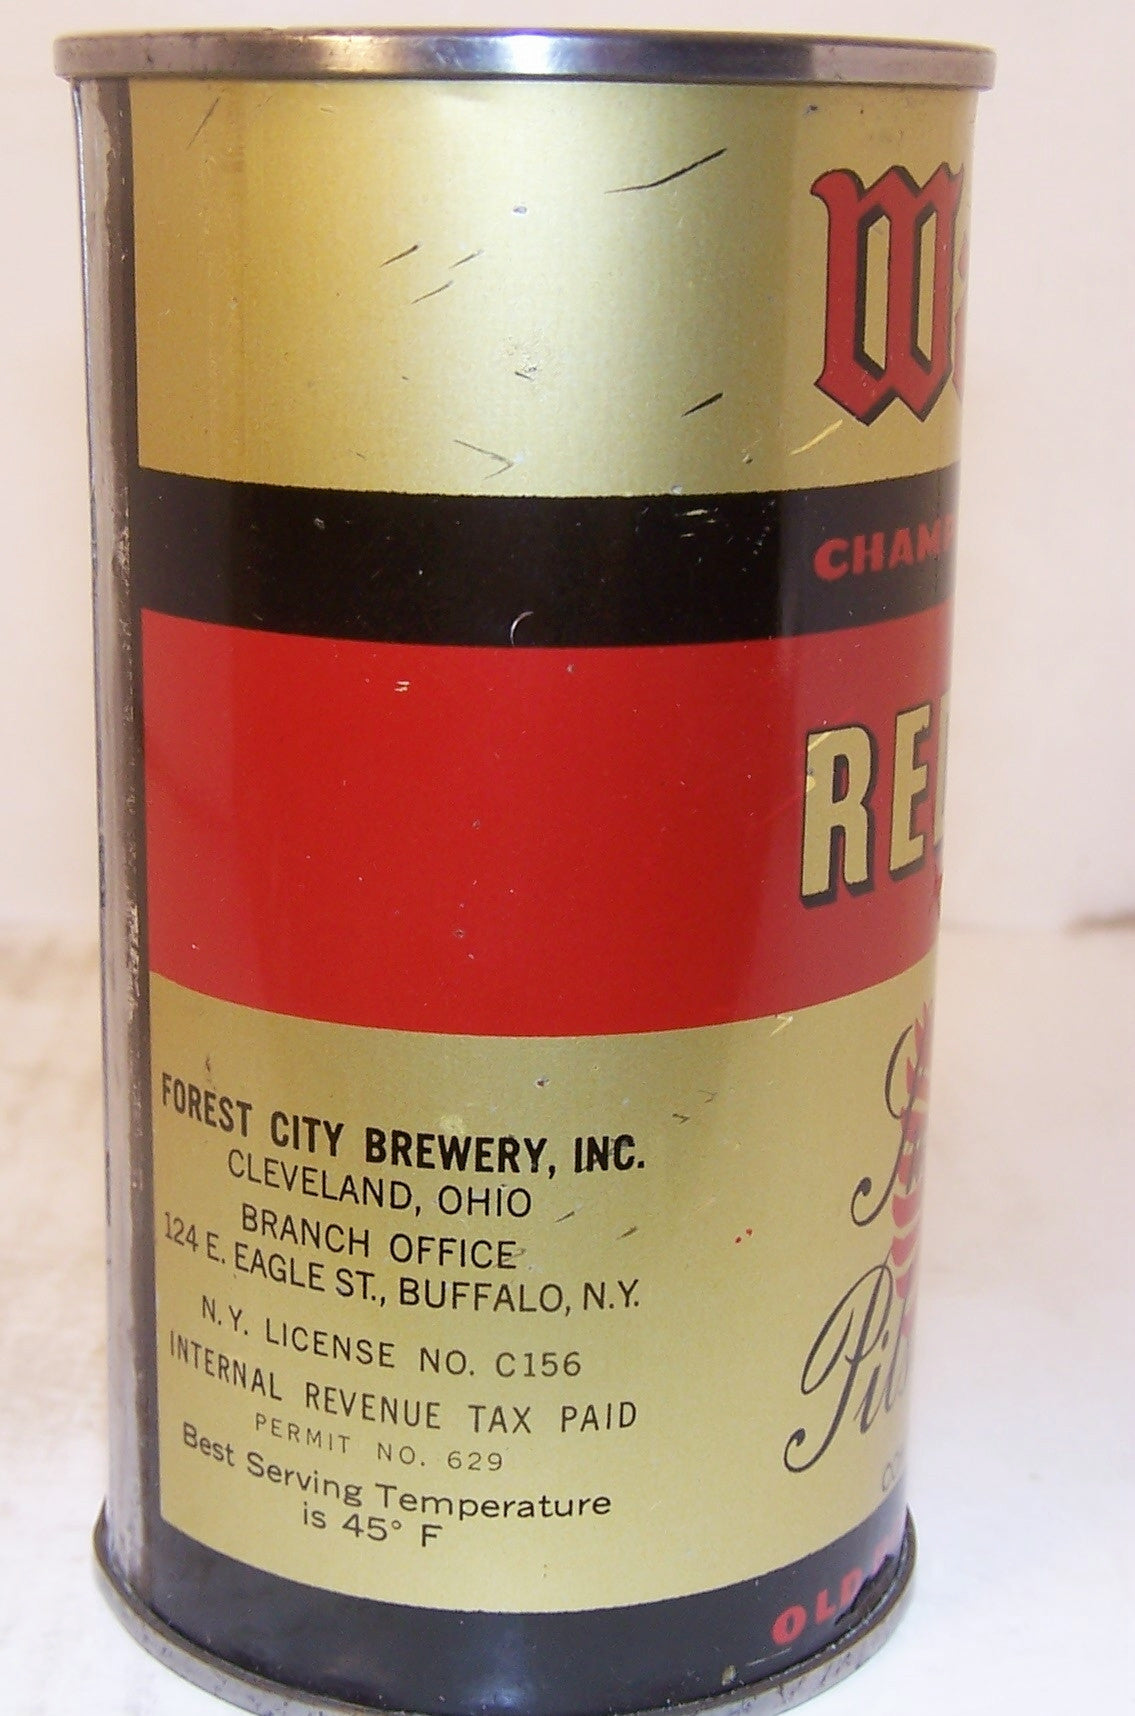 Waldorf Red Band Beer, Lilek page # 859, Grade 1 Sold 2/13/15